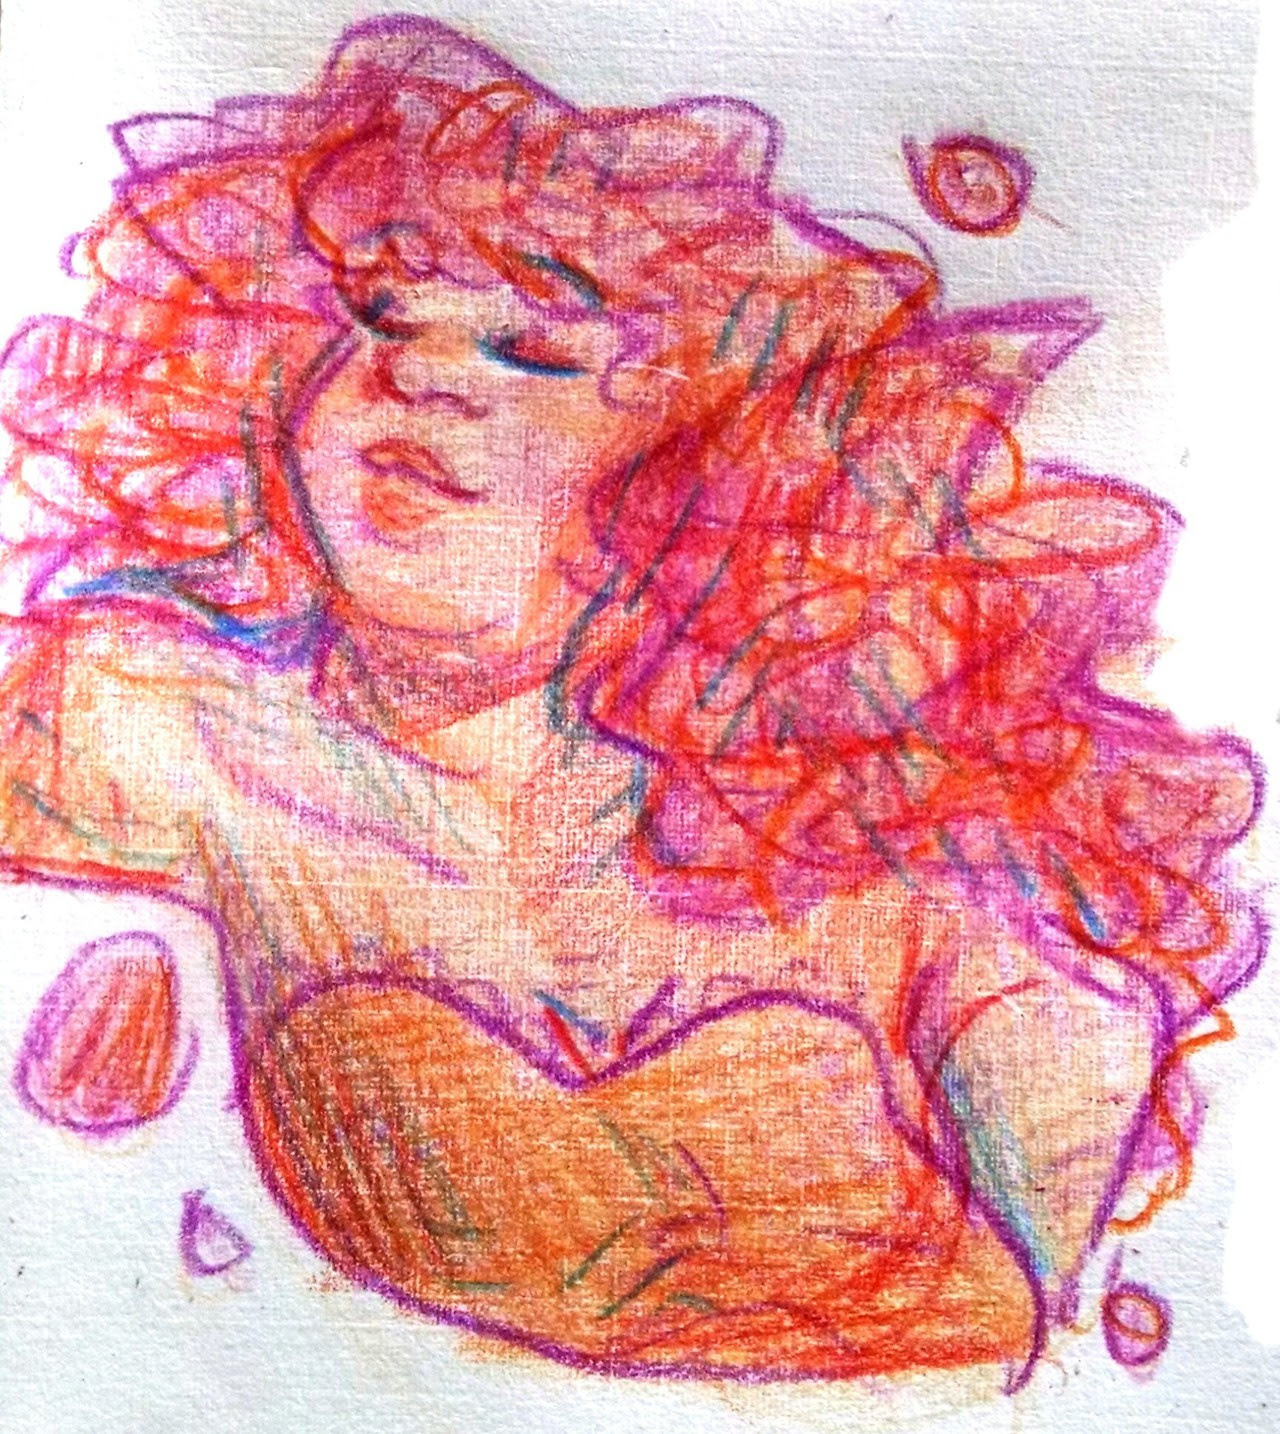 Experimenting some more w those colored pencils. This time, a lovely rock